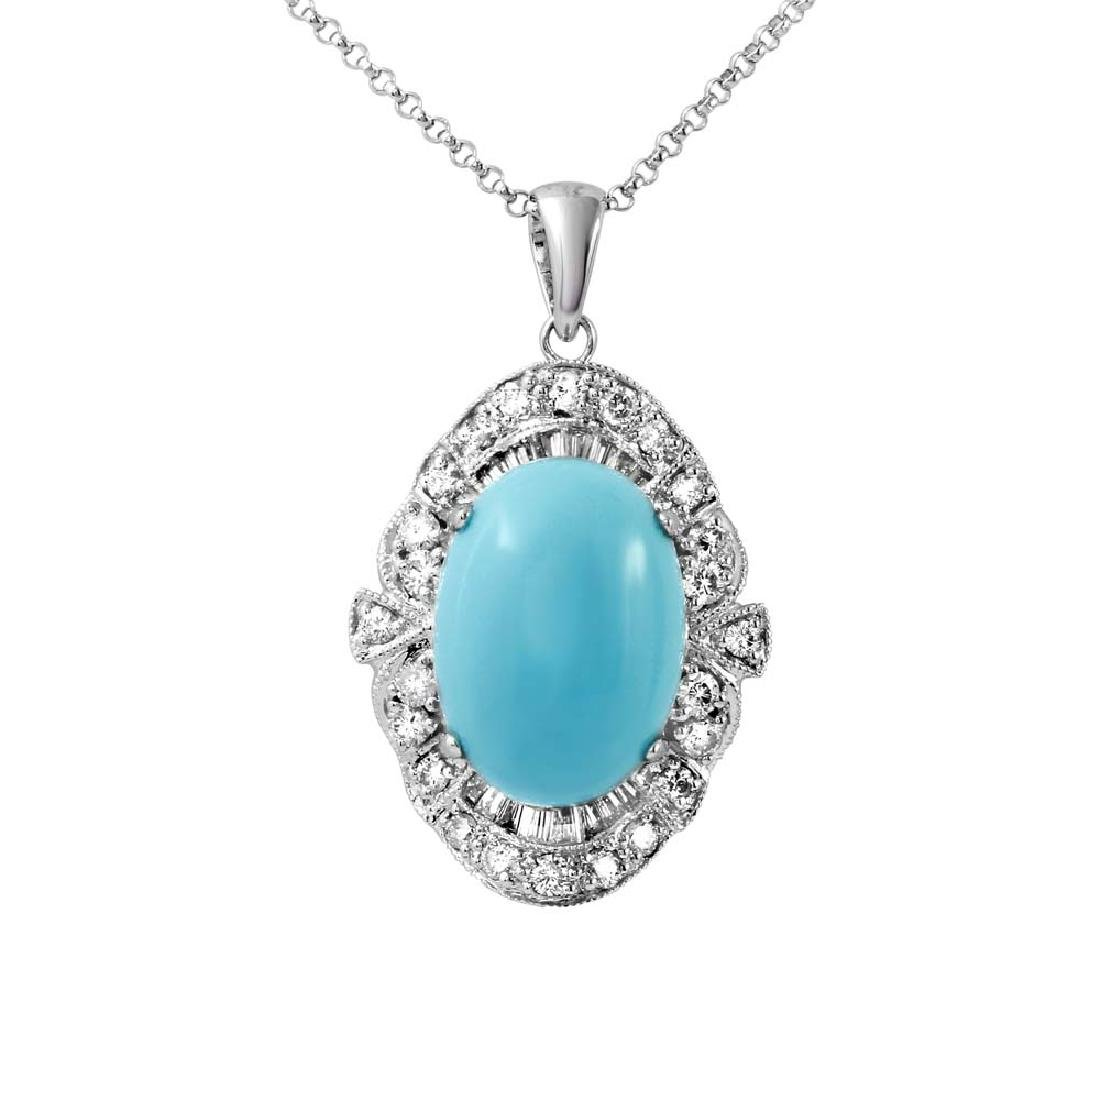 5.67 CTW Turquoise Slider Necklace in 14K White Gold